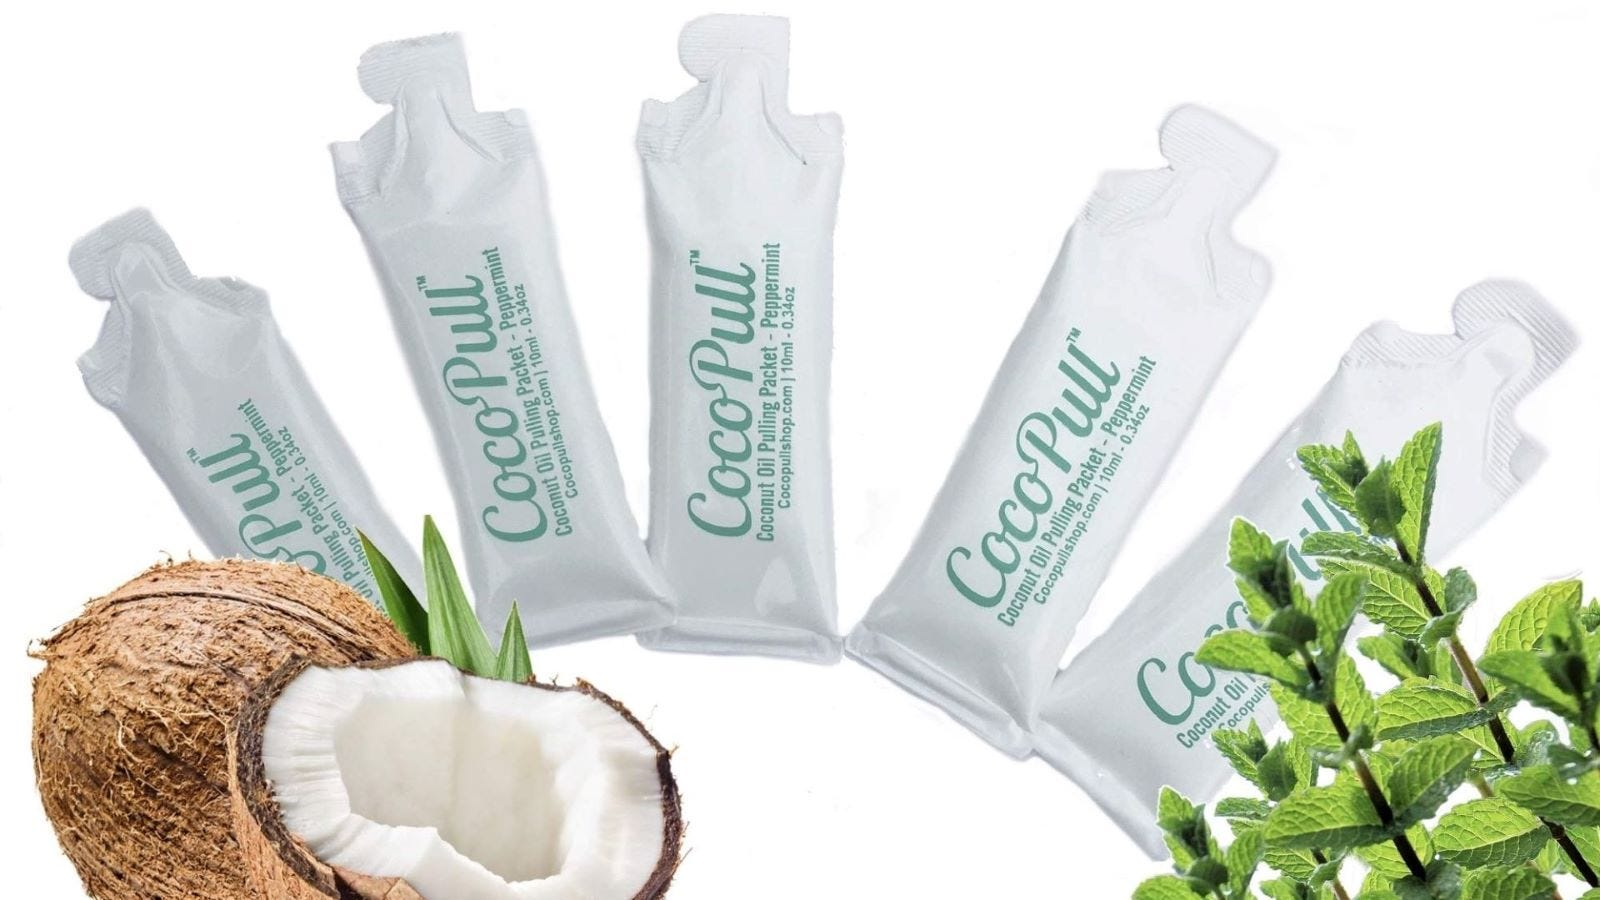 Five tubes of CocoPull Coconut Oil next to a coconut that's been sliced open.